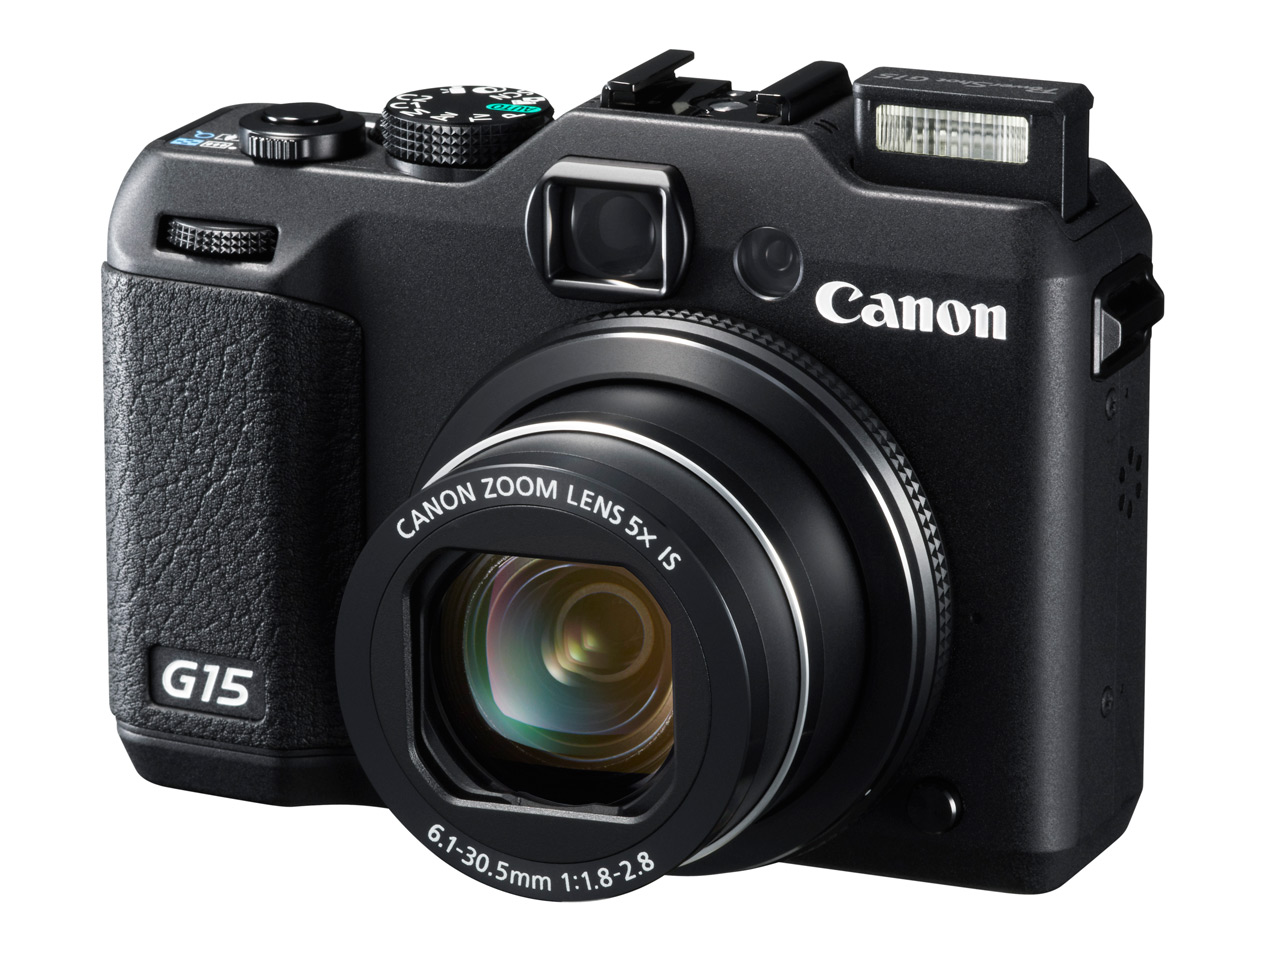 Canon powershot g15 product photo front